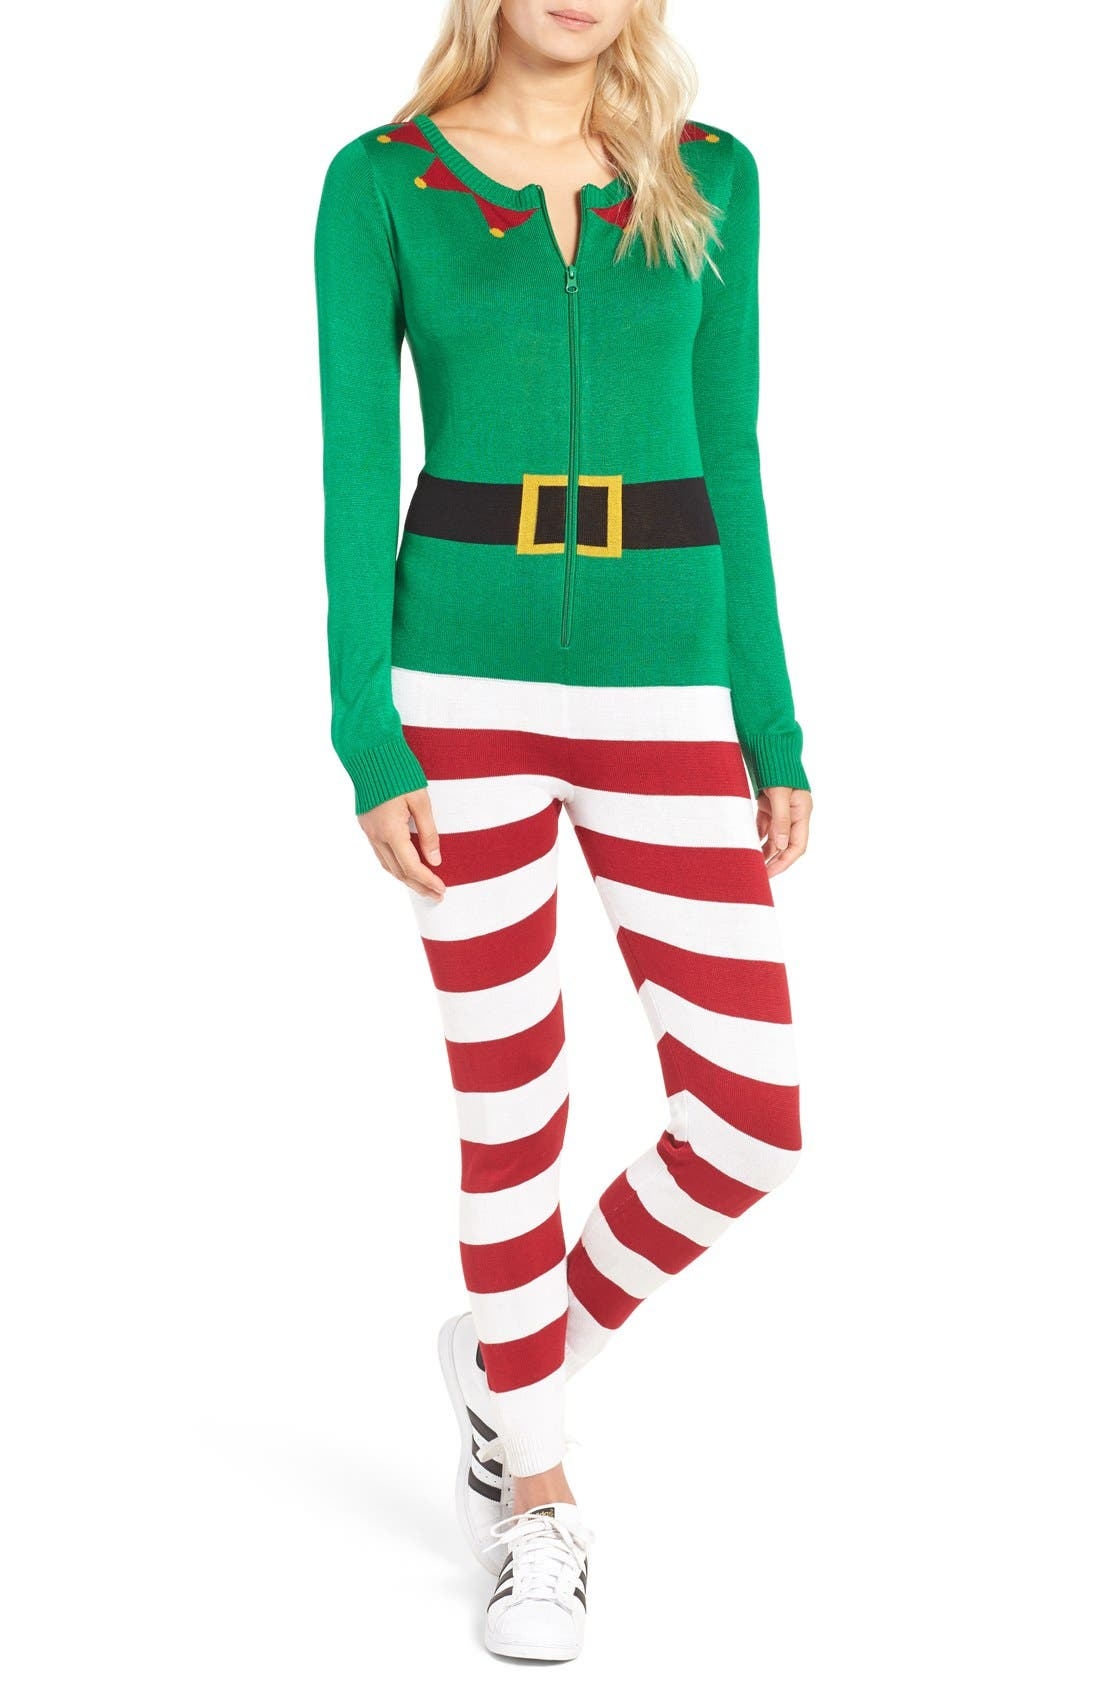 LOVE BY DESIGN,                             Christmas One-Piece Pajamas,                             Main thumbnail 1, color,                             314